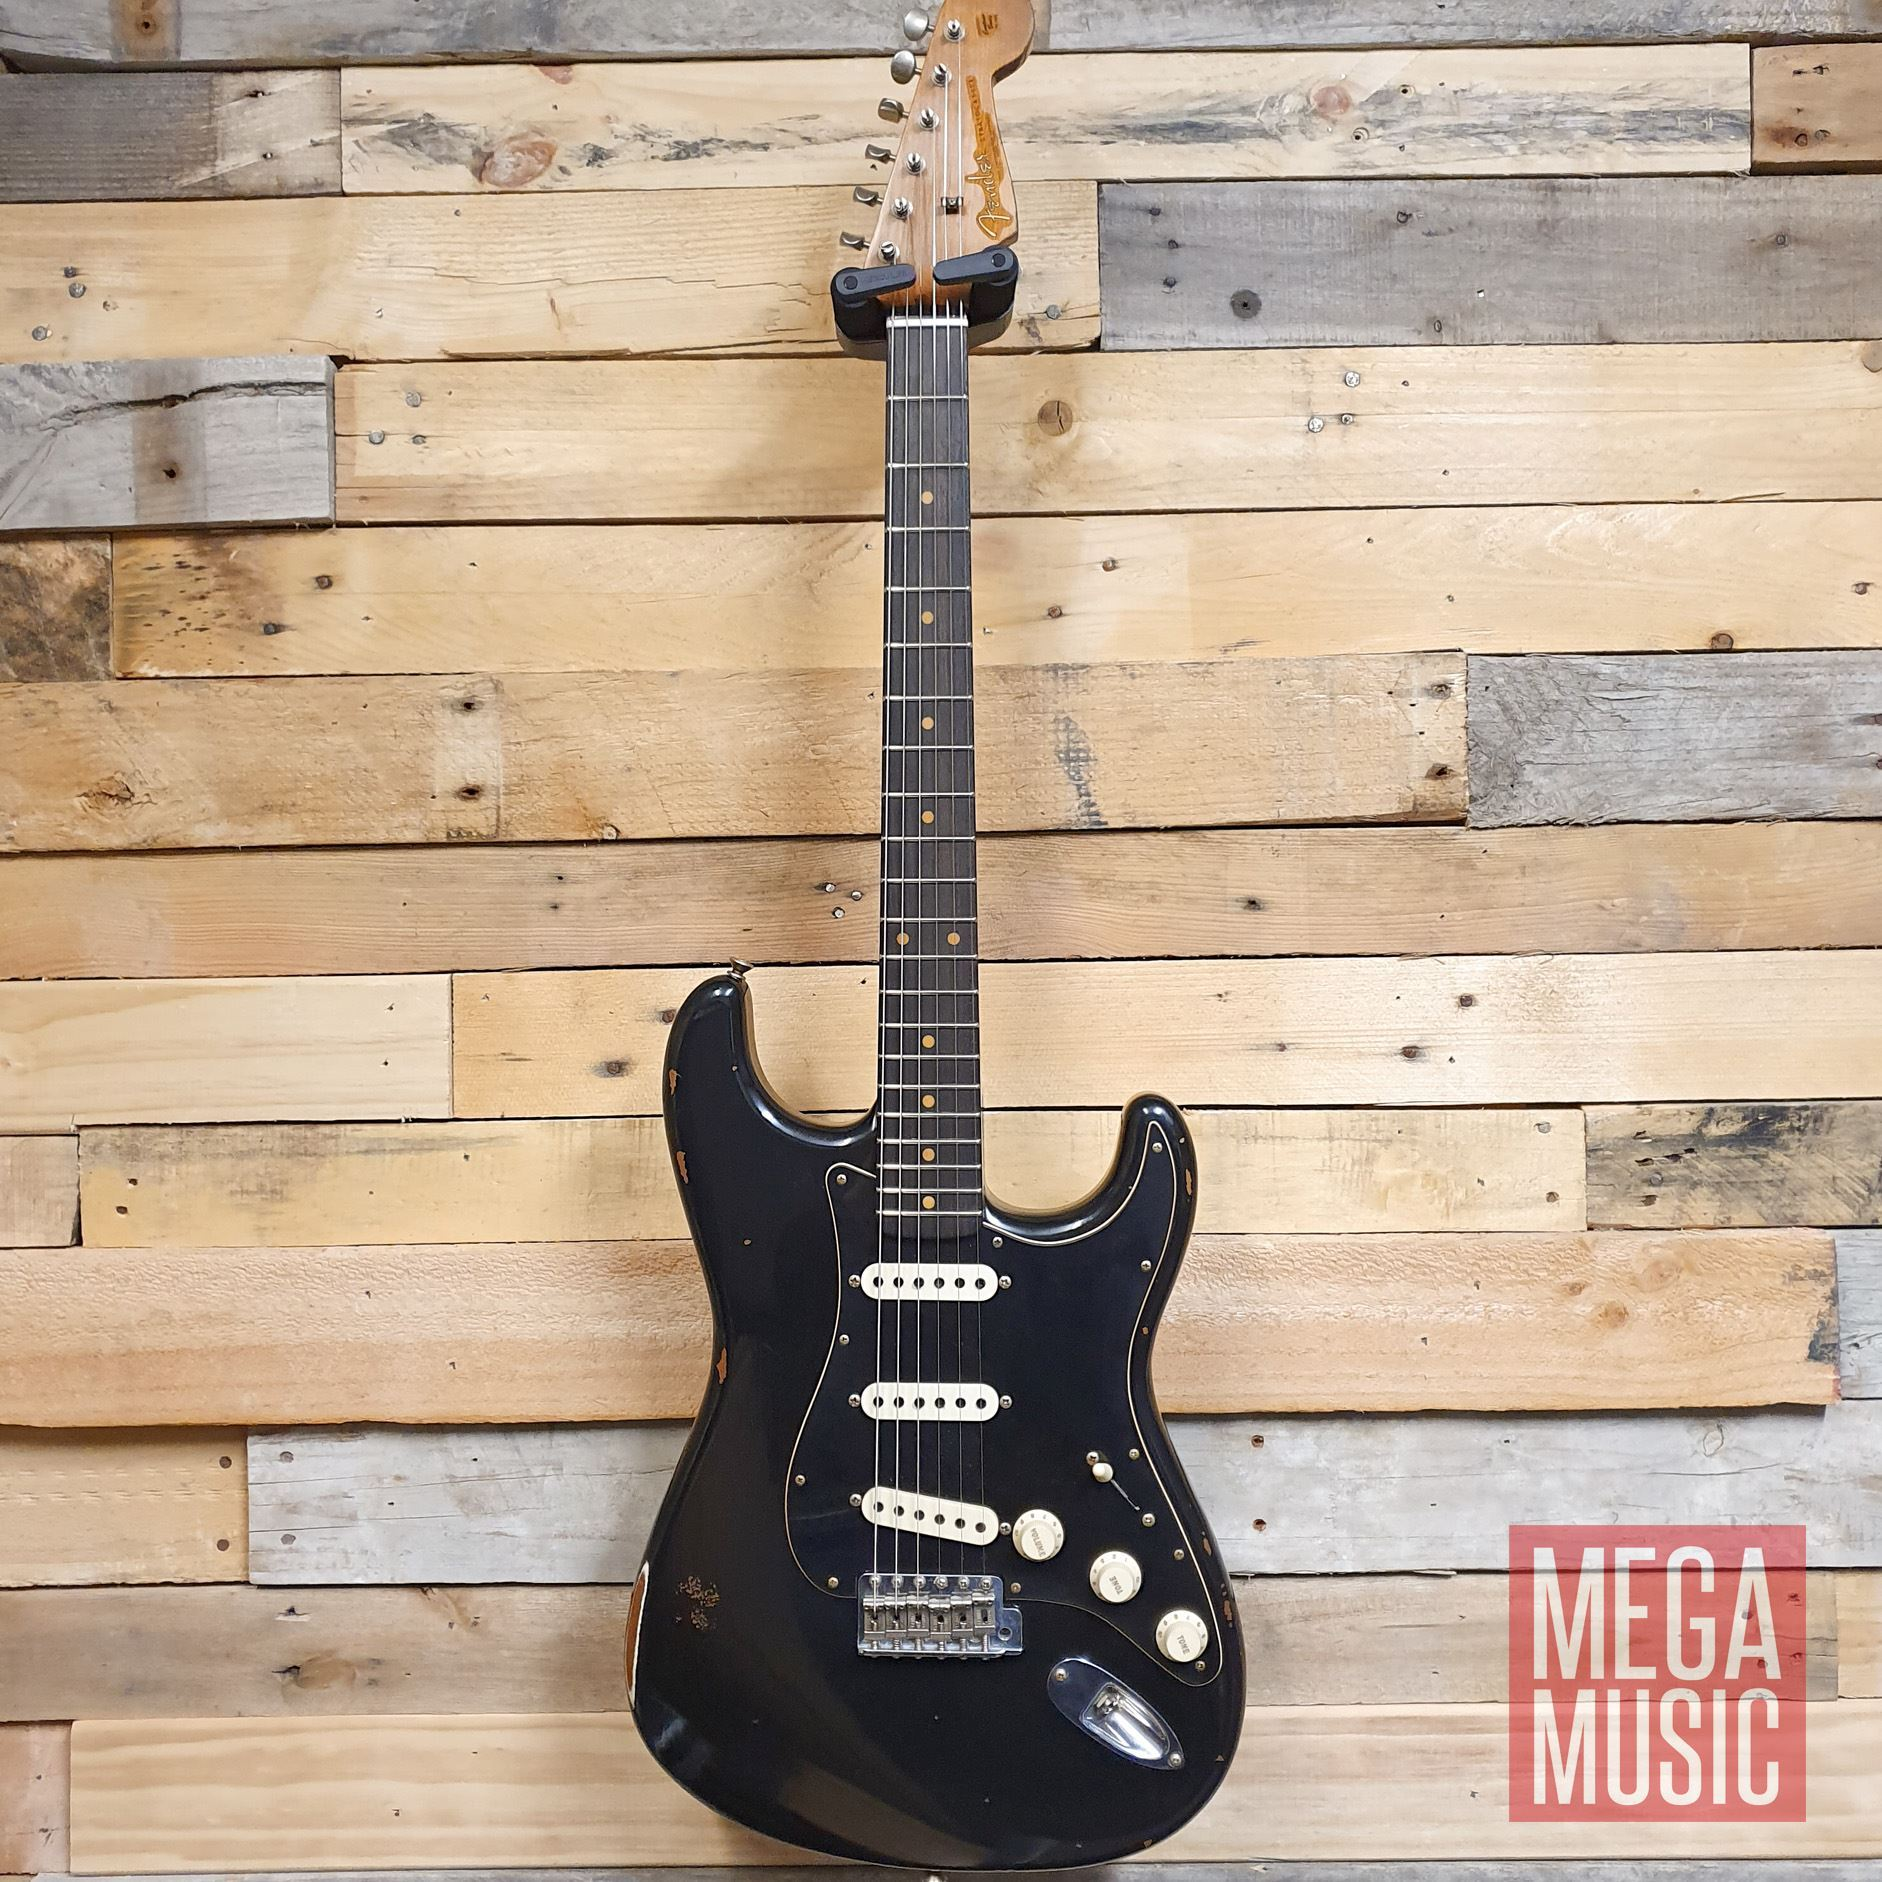 Fender Custom Shop Limited Edition Roasted Poblano Stratocaster Relic  Electric Guitar - Aged Black